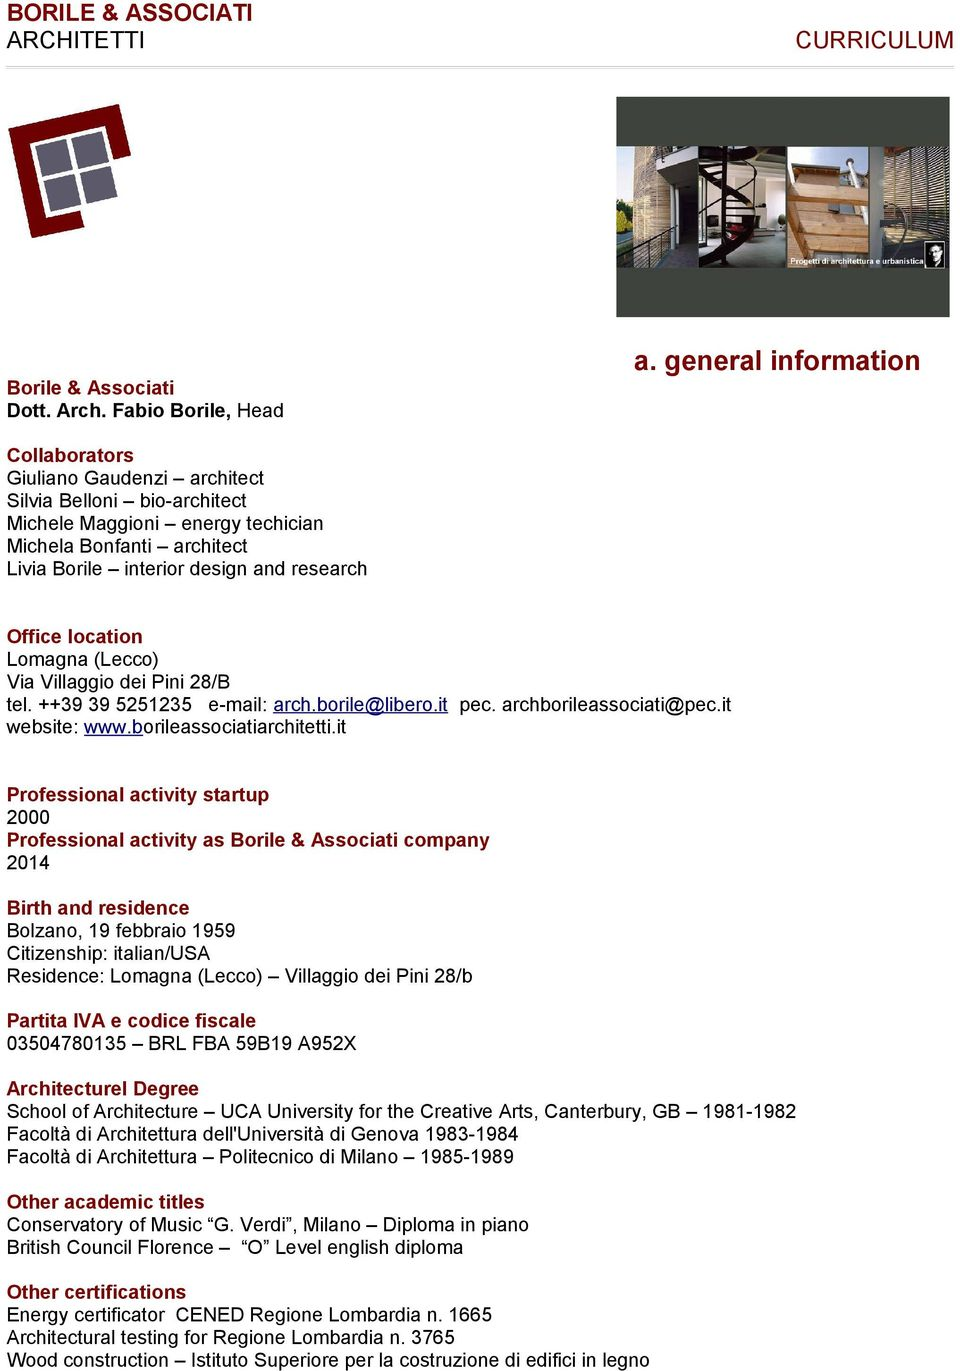 Office location Lomagna (Lecco) Via Villaggio dei Pini 28/B tel. ++39 39 5251235 e-mail: arch.borile@libero.it pec. archborileassociati@pec.it website: www.borileassociatiarchitetti.